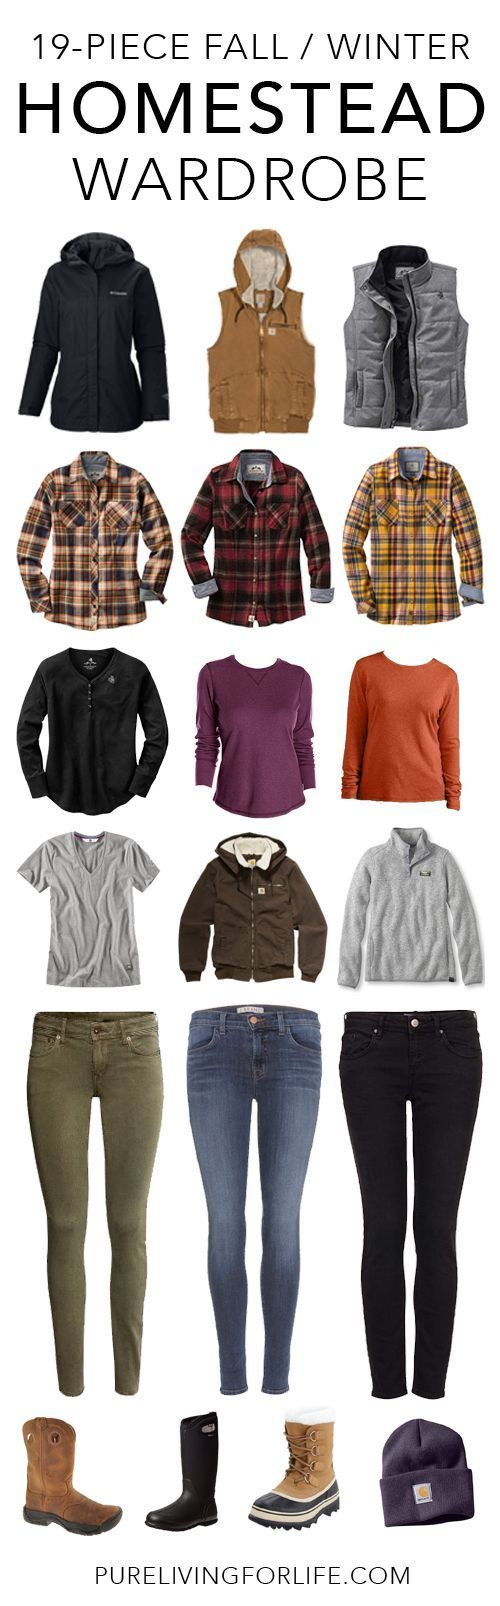 Great fall and winter wardrobe for homesteaders, farm girls or country girls!